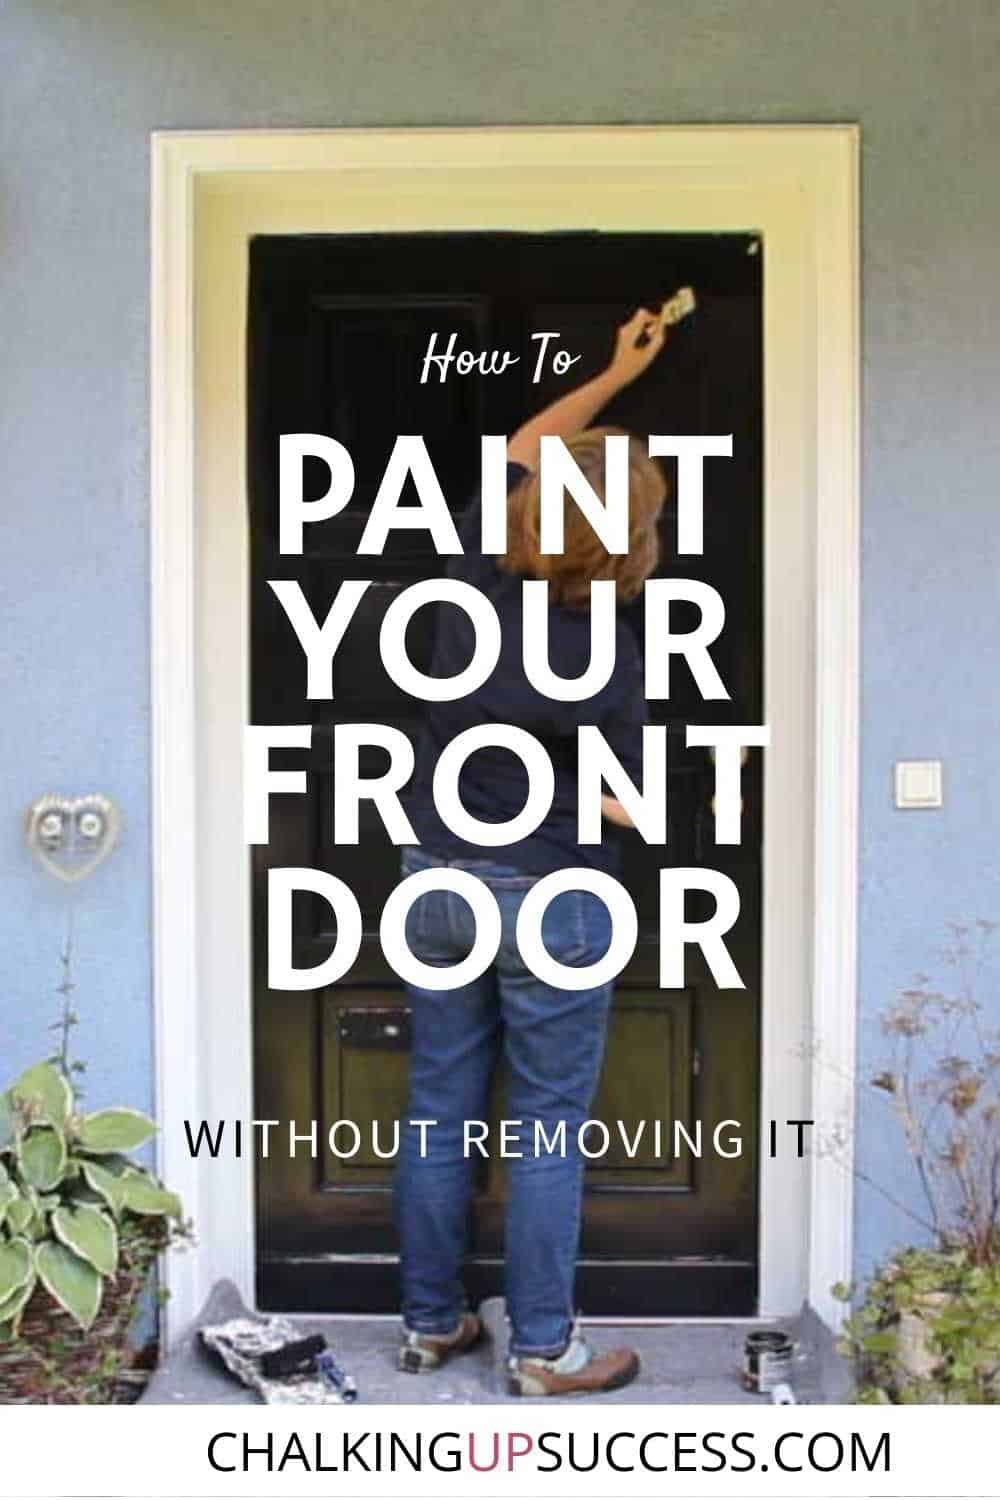 Pin to Pinterest - A person showing how to paint your front door black